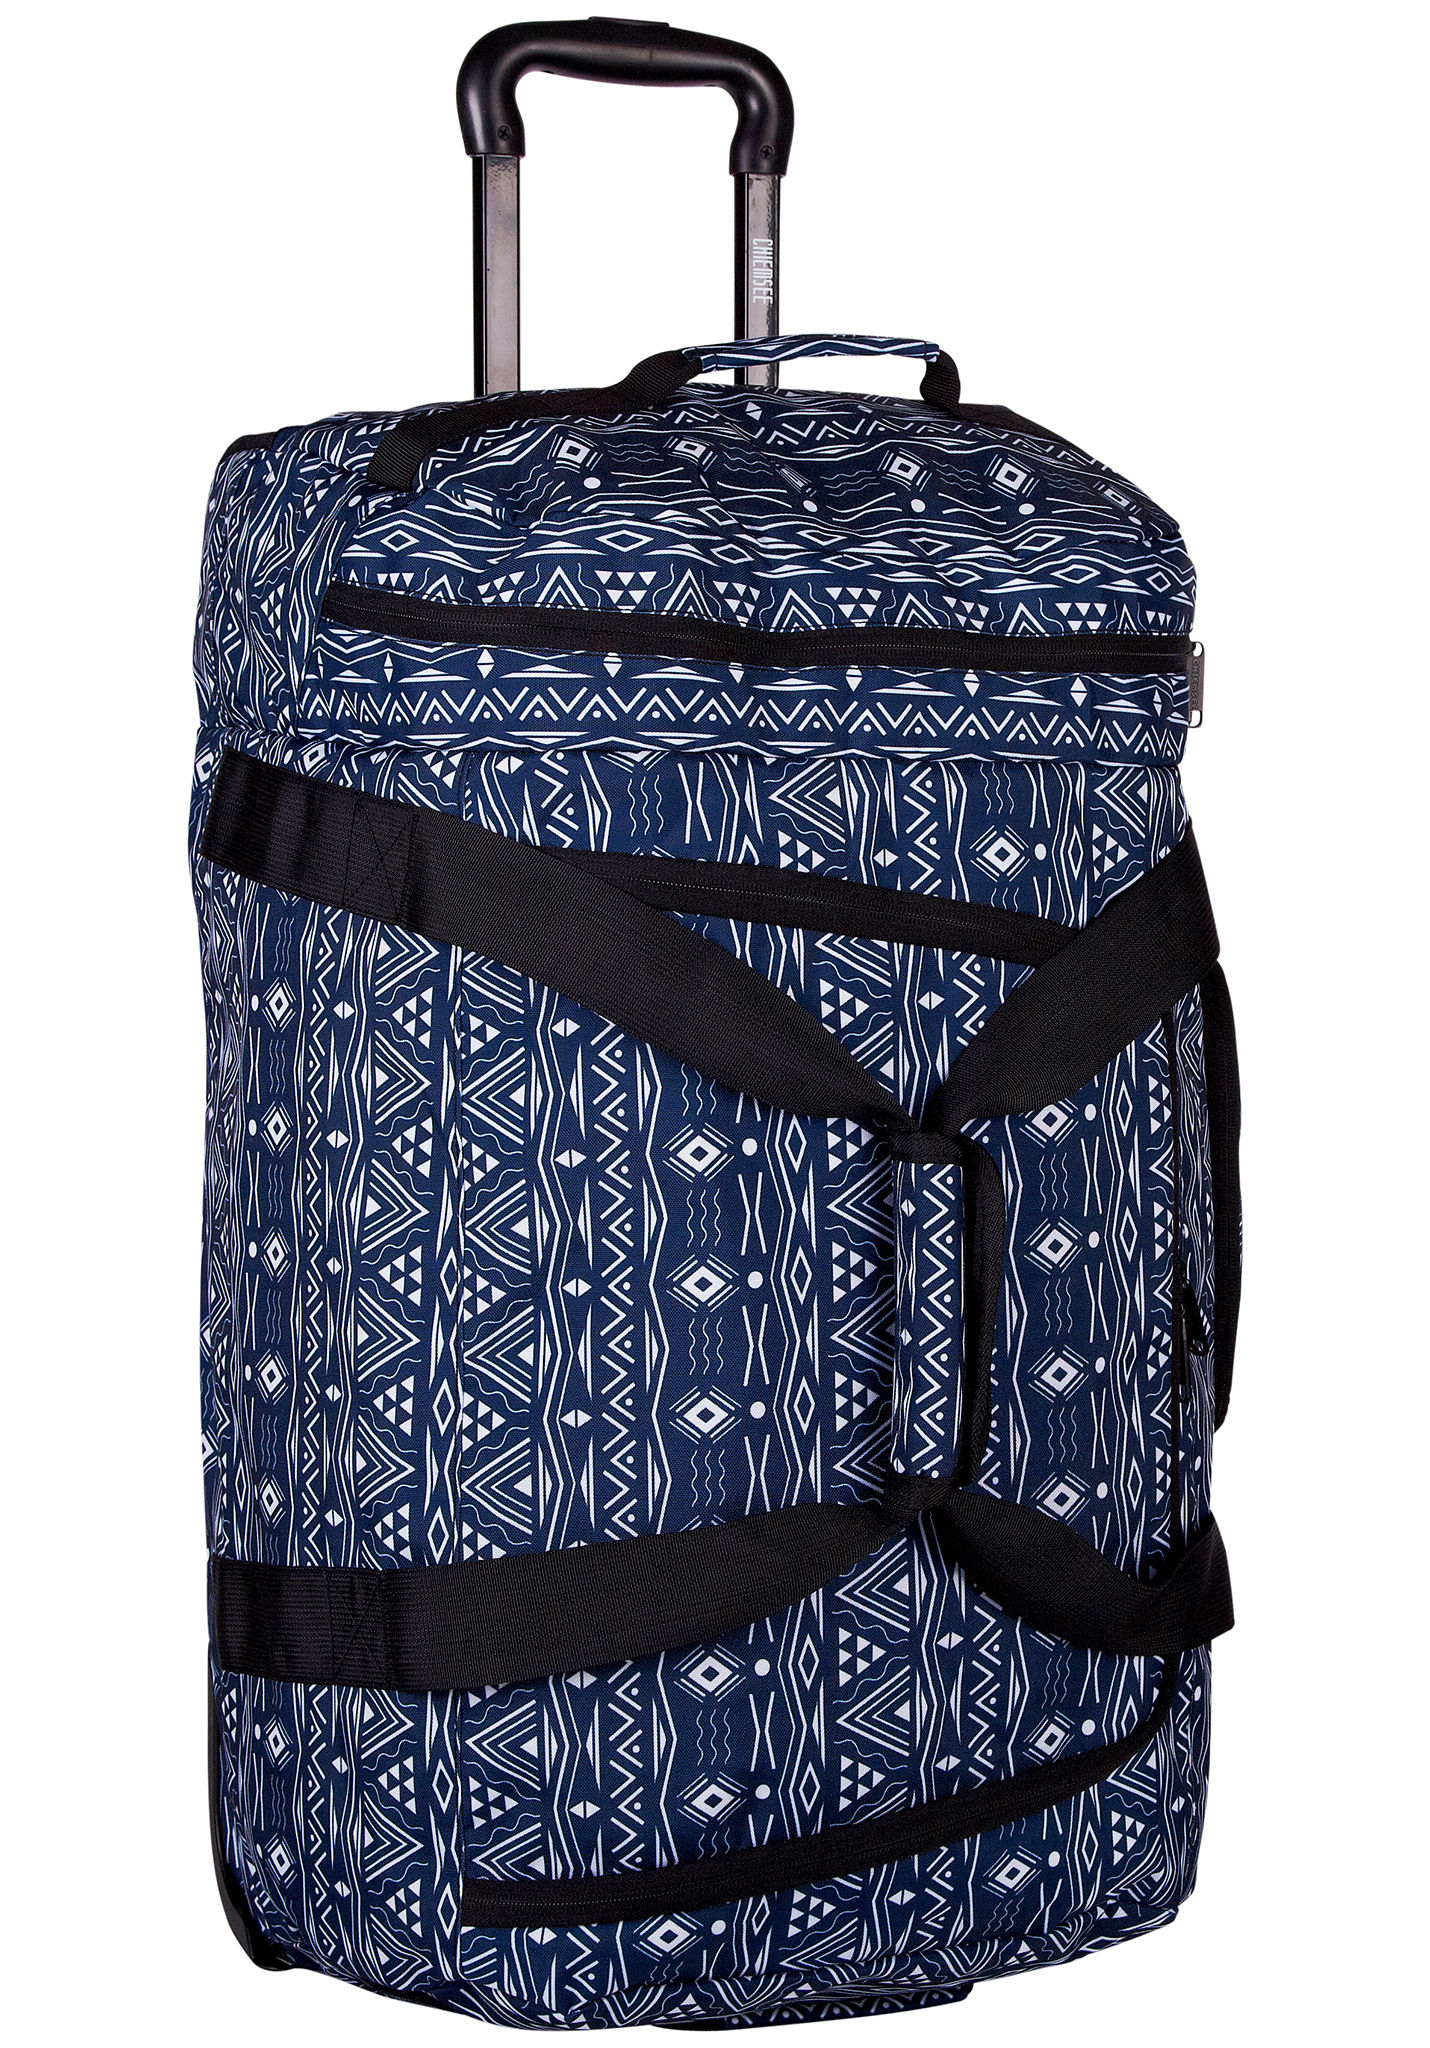 fbc37b5bc8a9a Chiemsee Rolling Duffle - Travel Bag for Women - Blue - Planet Sports